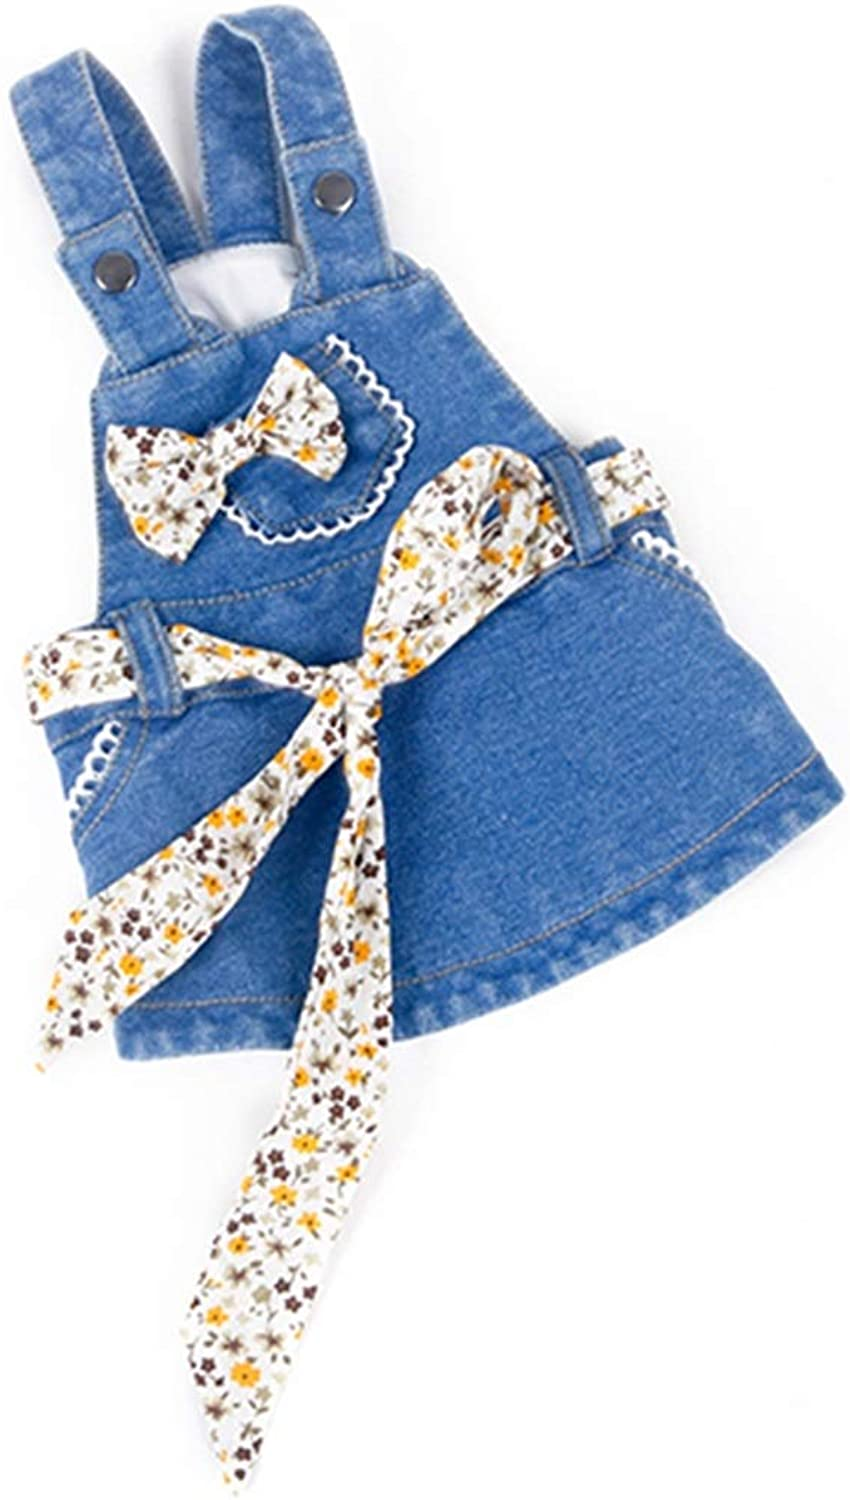 AUSWIEI Sabrina Julias Dog Cute Clothes for Spring and Summer Bule Denim Dress (color   bluee, Size   XS)